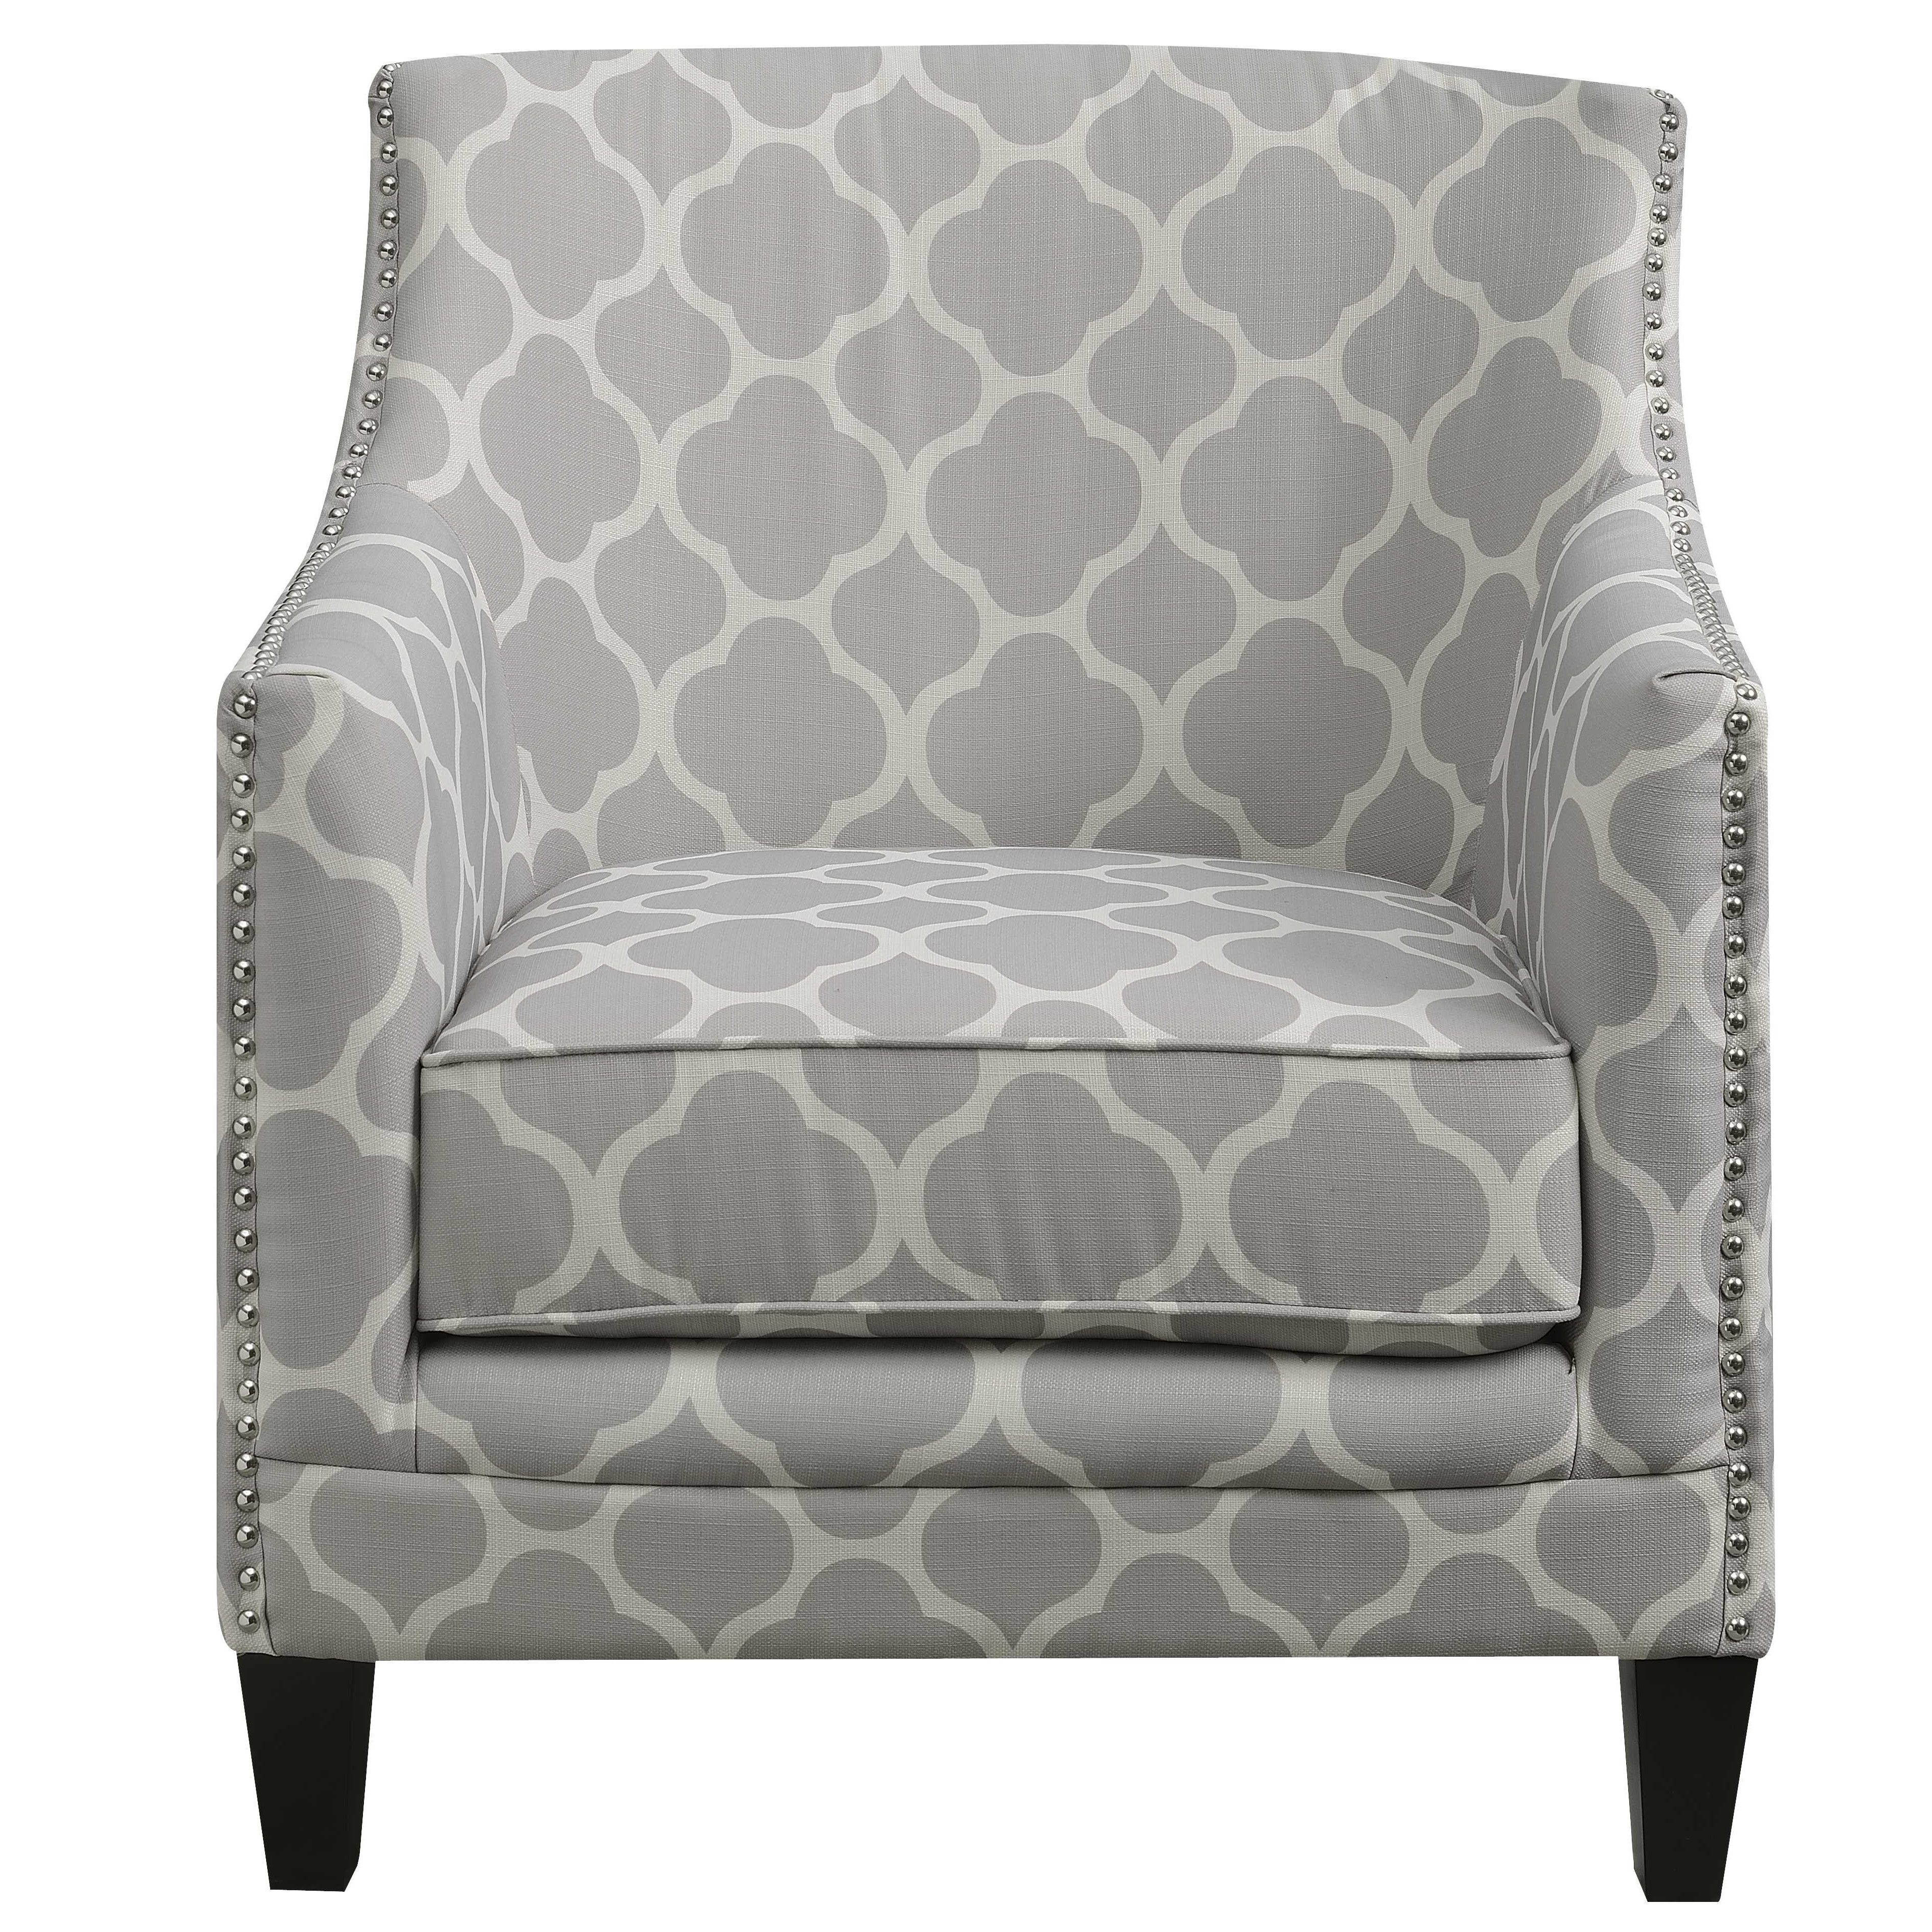 Bailes Armchair Accent Chairs Stylish Chairs Furniture